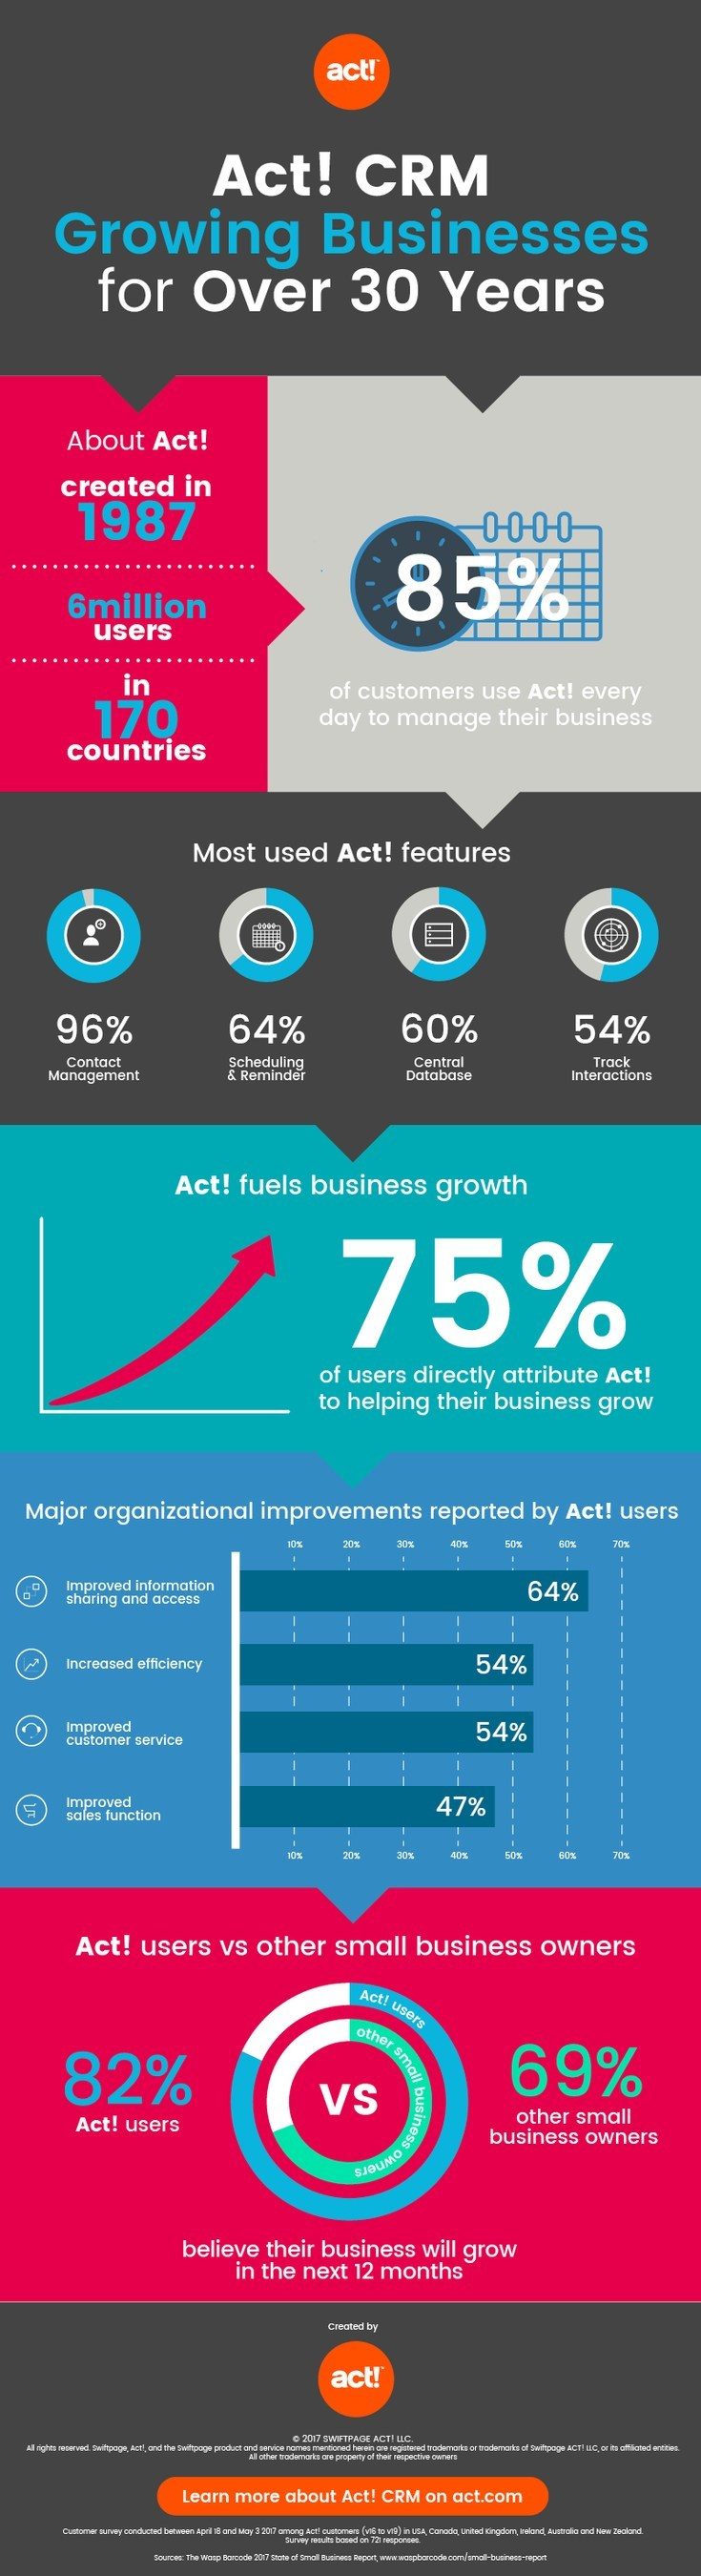 Act! CRM Growing Businesses for Over 30 Years